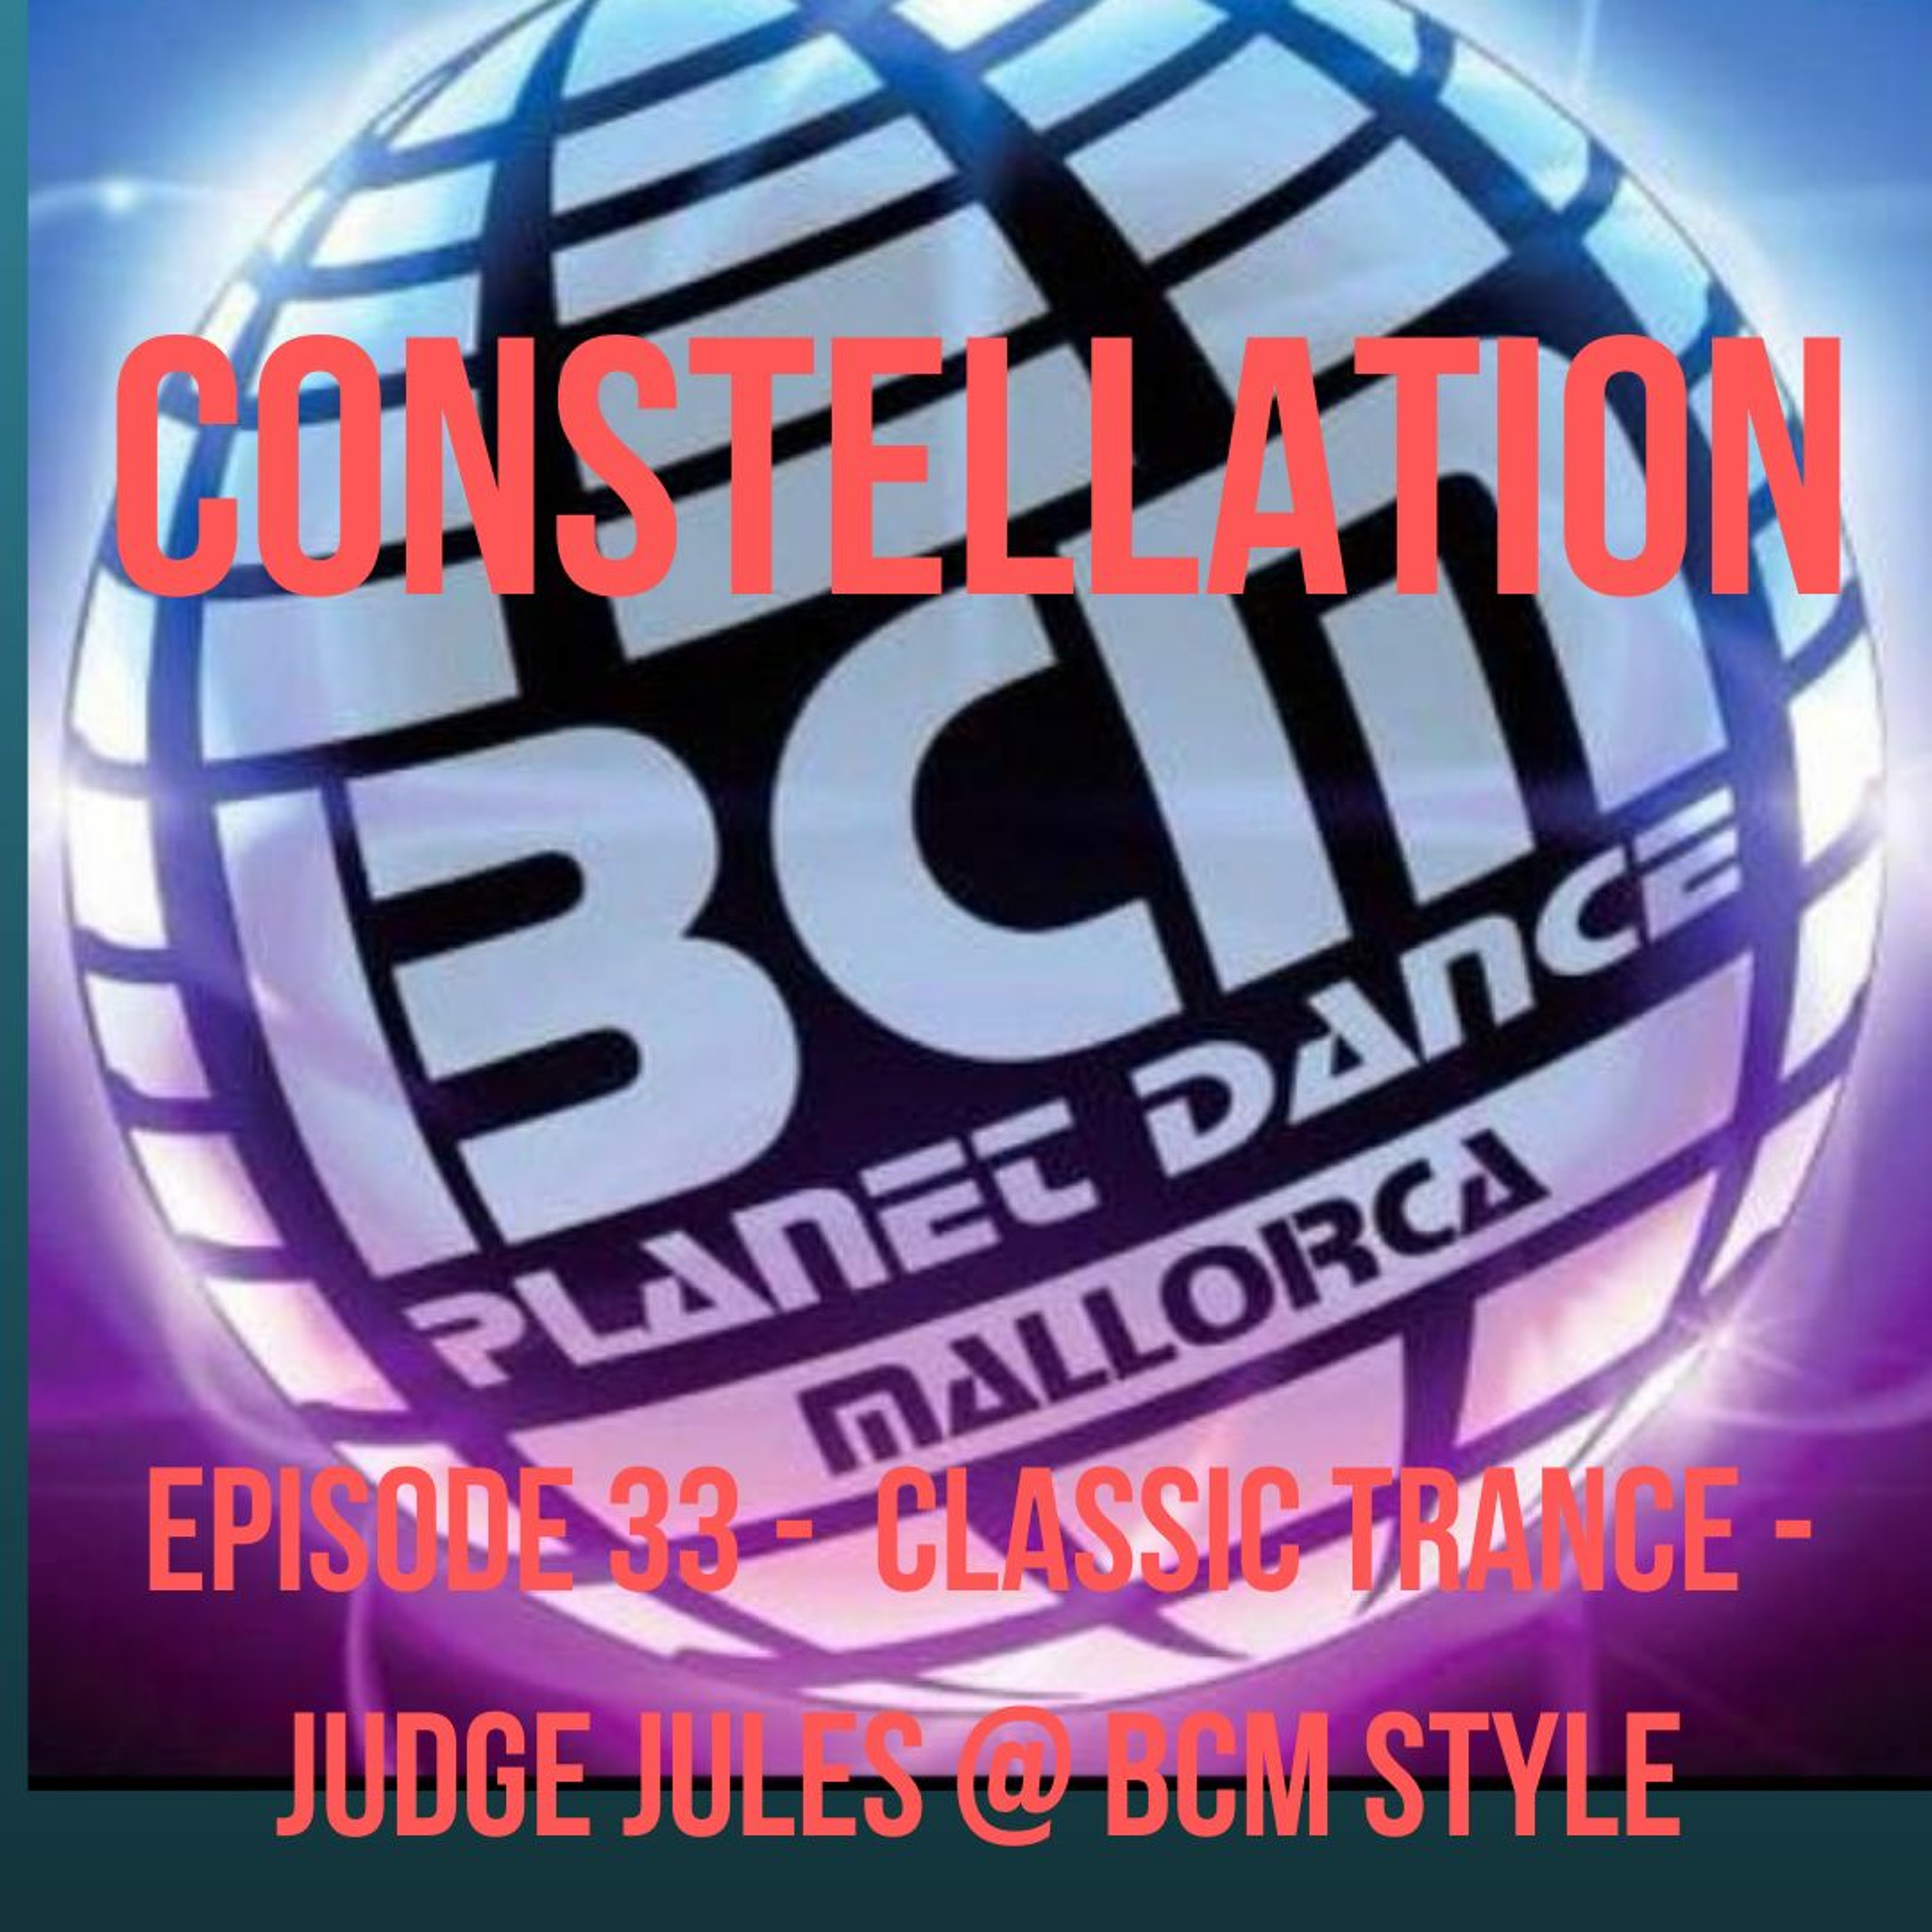 Constellation 33 - Classic Trance - Judge Jules BCM Magaluf Style